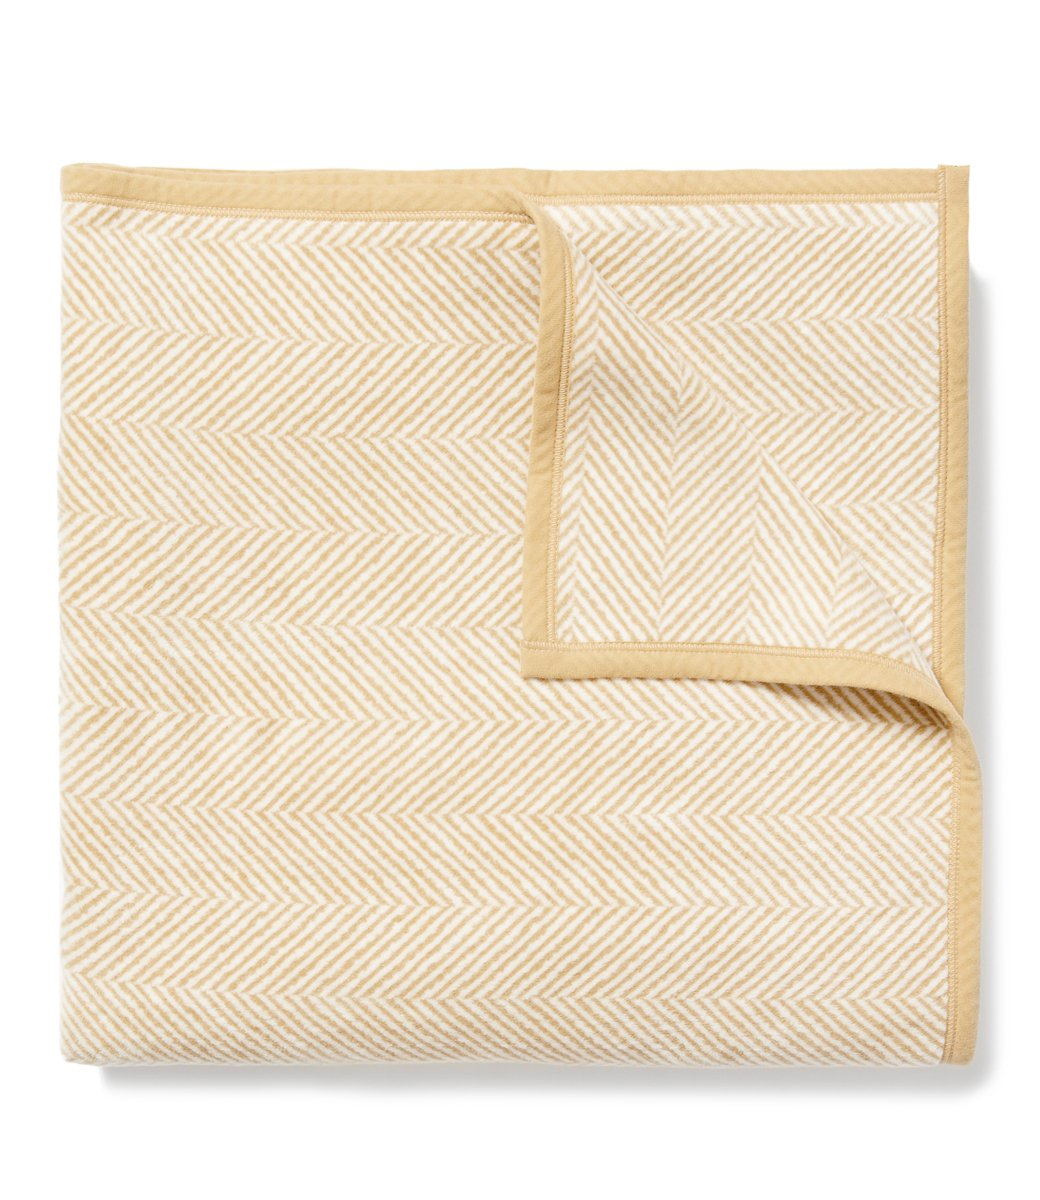 Harborview Herringbone Classic Blanket Beige